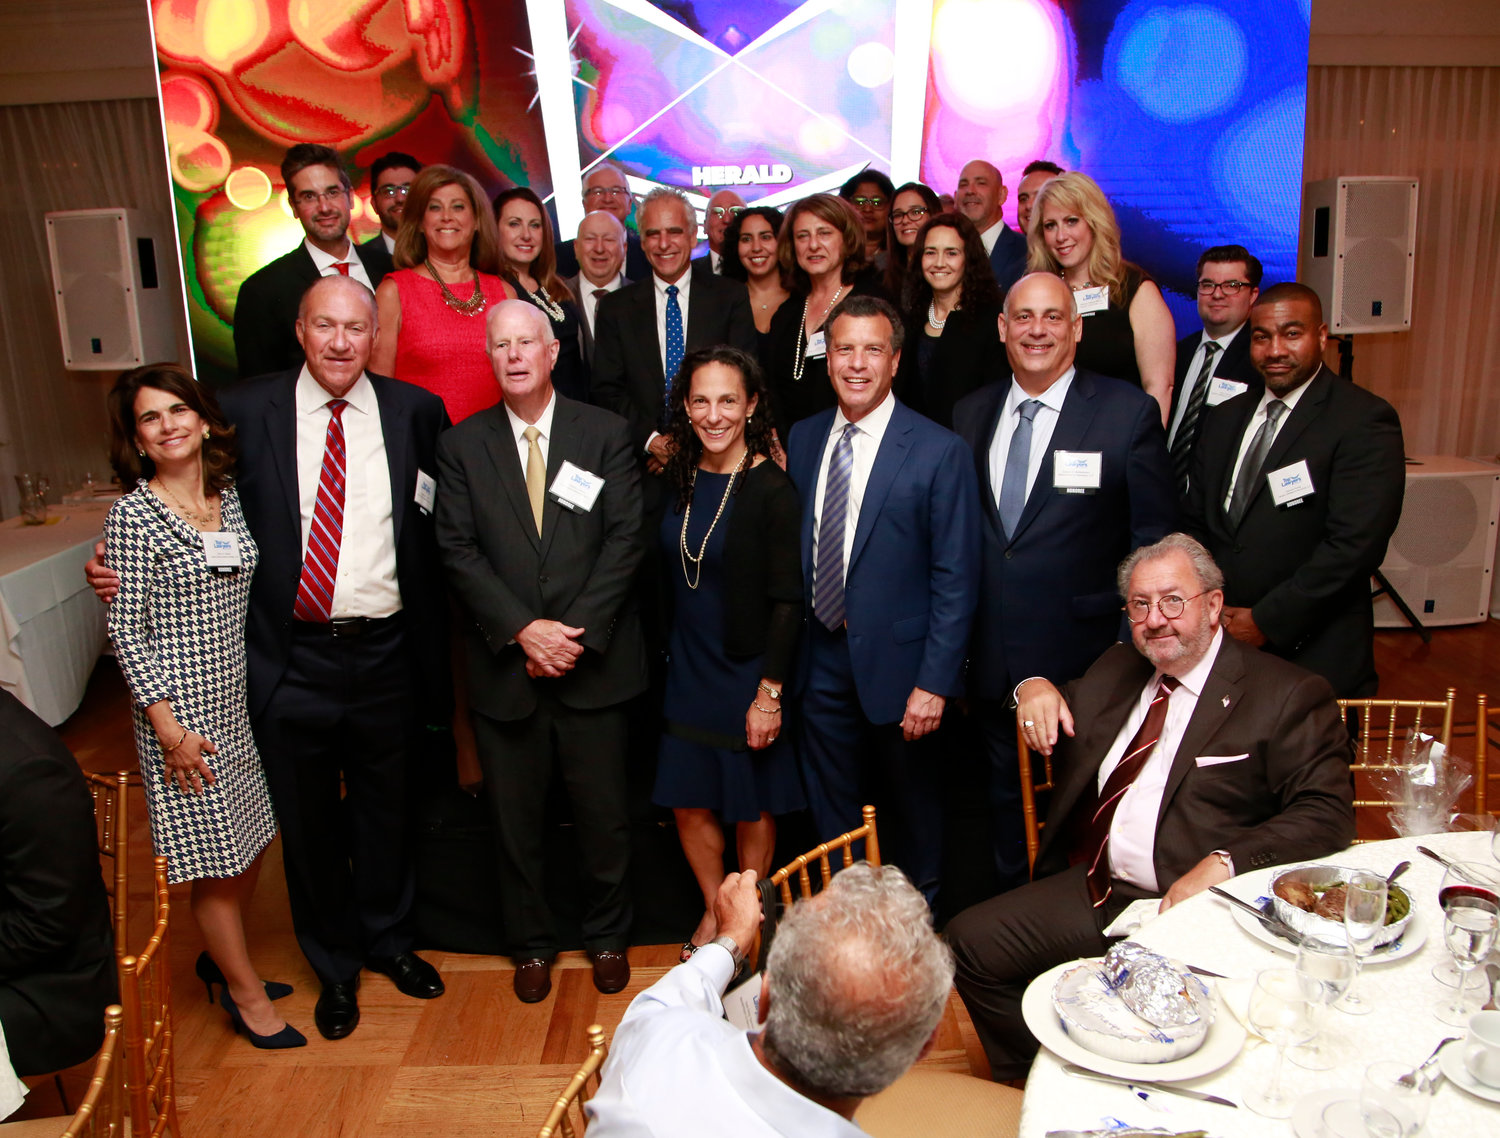 The Top Lawyers of Long Island Awards Gala, hosted by RichnerLIVE and Herald Community Newspapers, recognized nearly 50 of the highest-performing legal professionals at the Carltun in Eisenhower Park on Sept. 25.